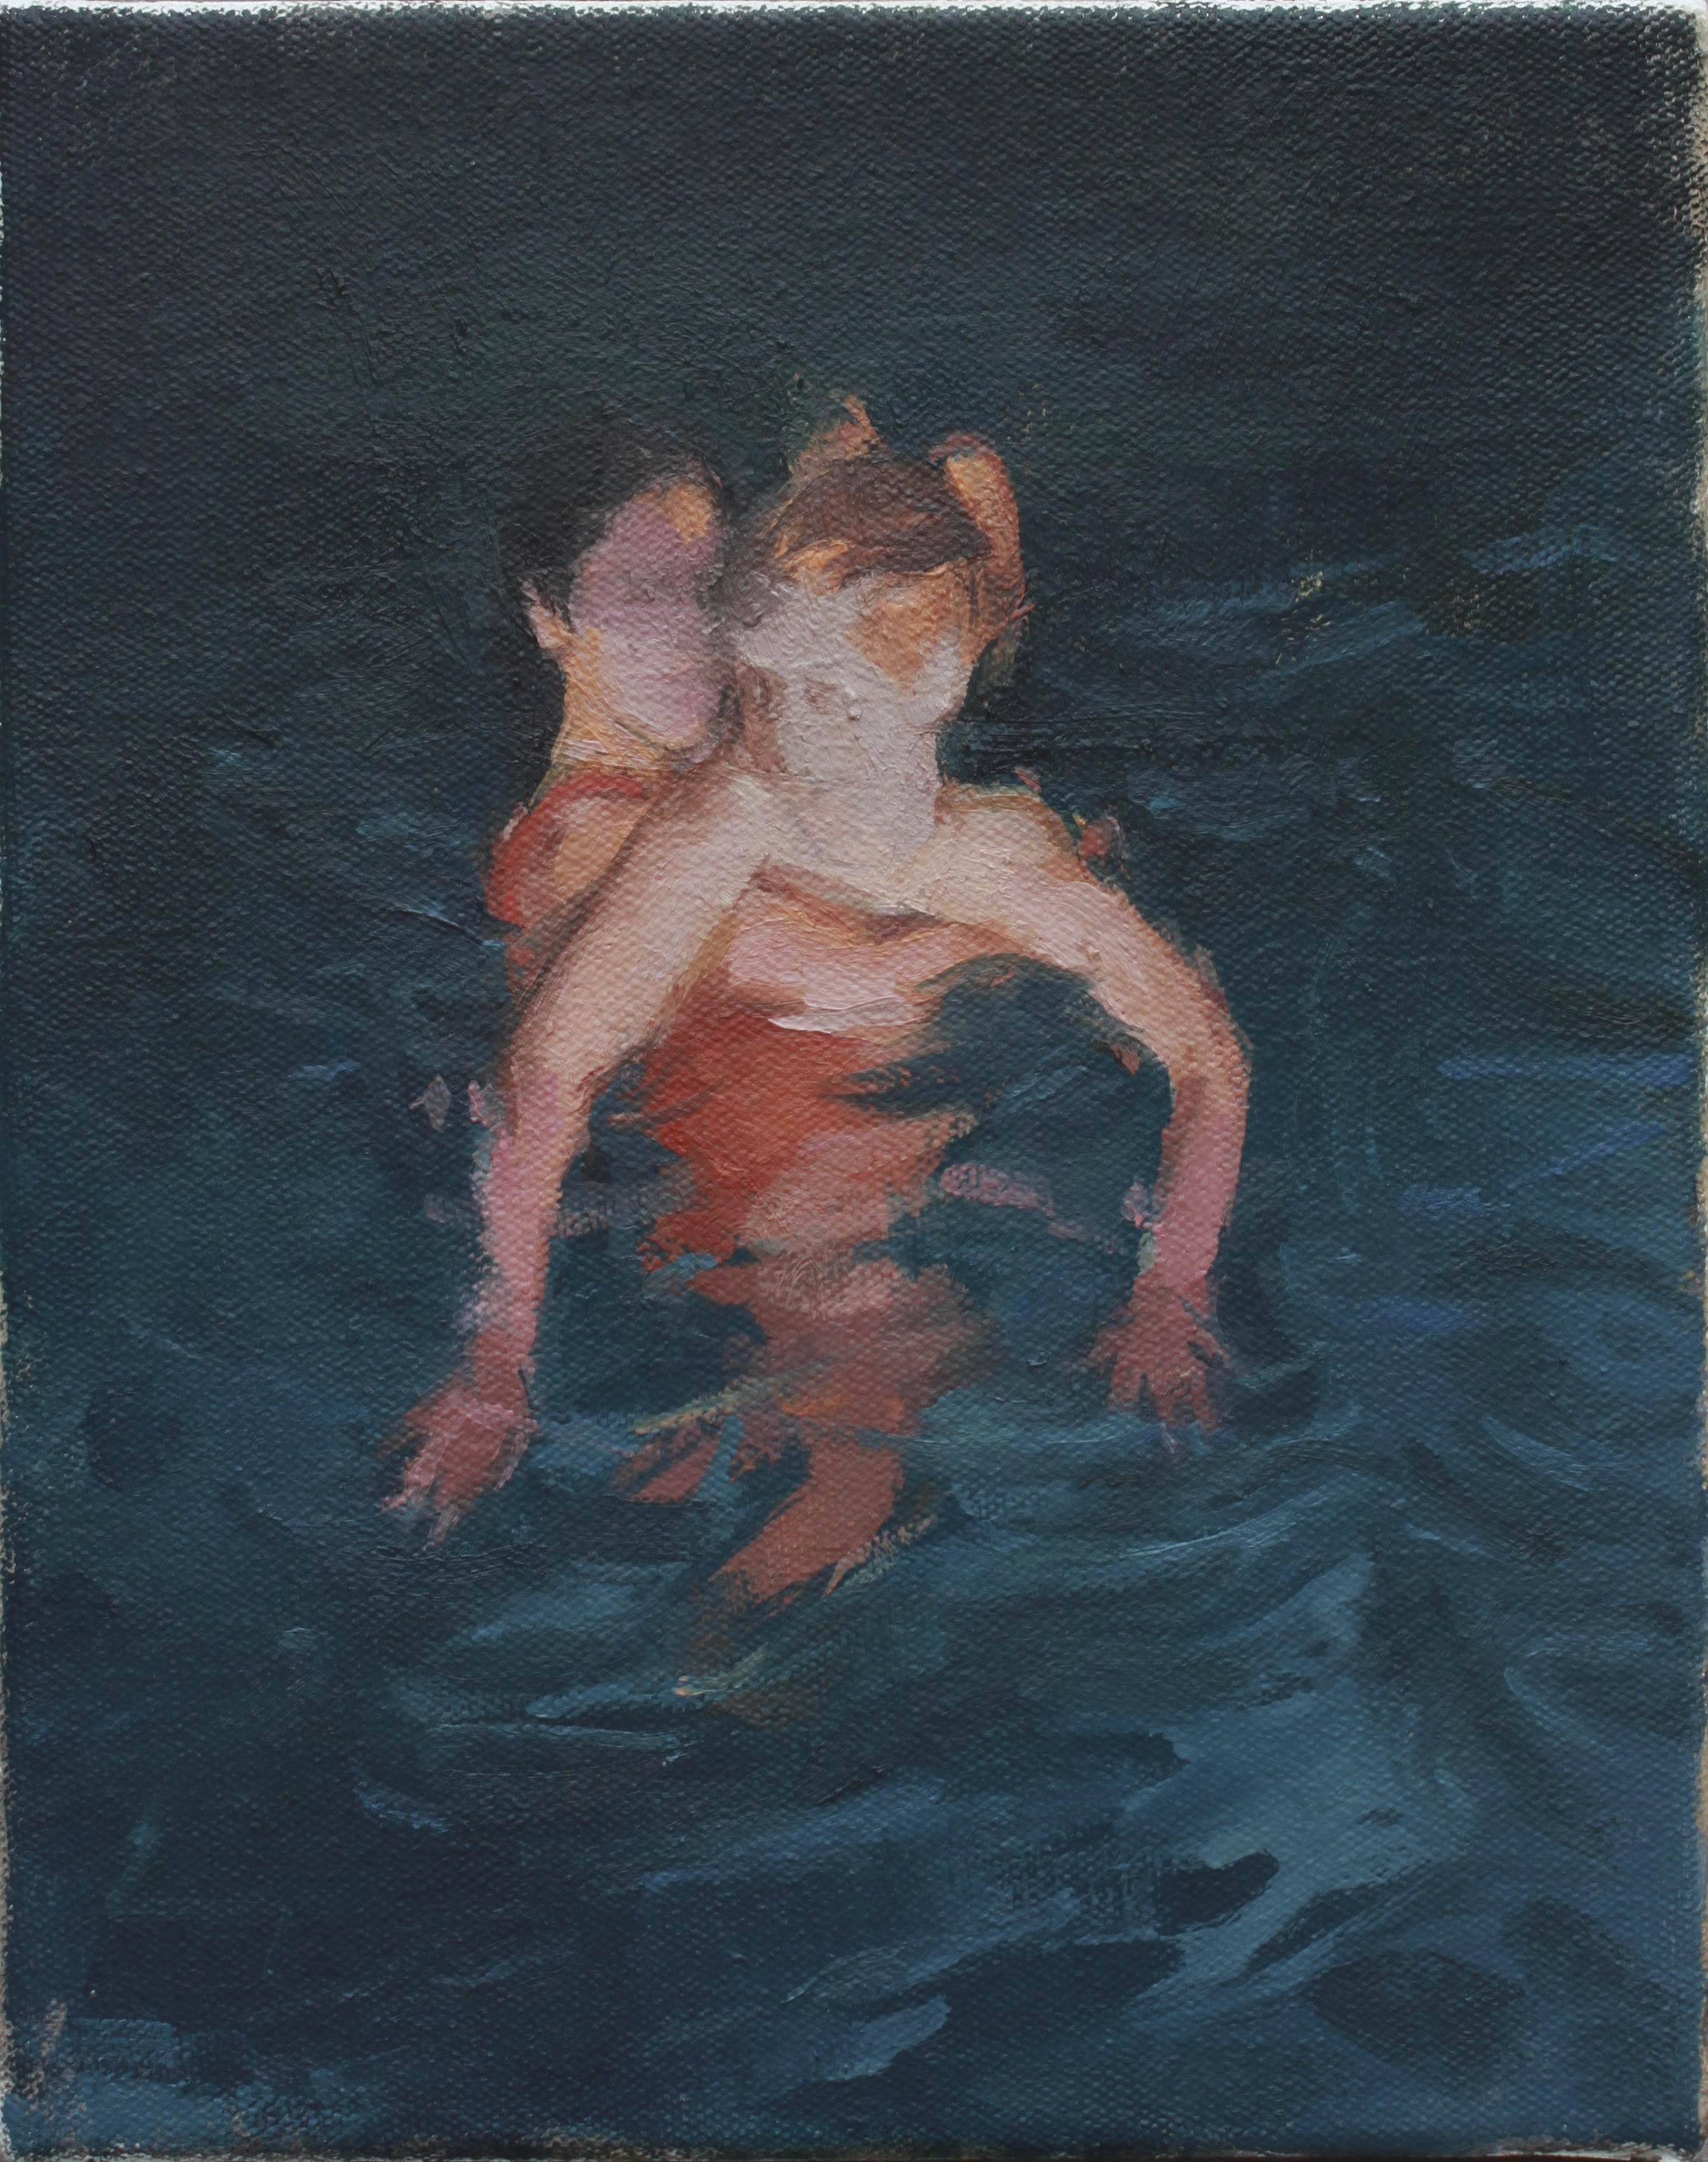 "swimmers  oil on canvas 8x10"" 2013  private collection NYC  purchase prints"